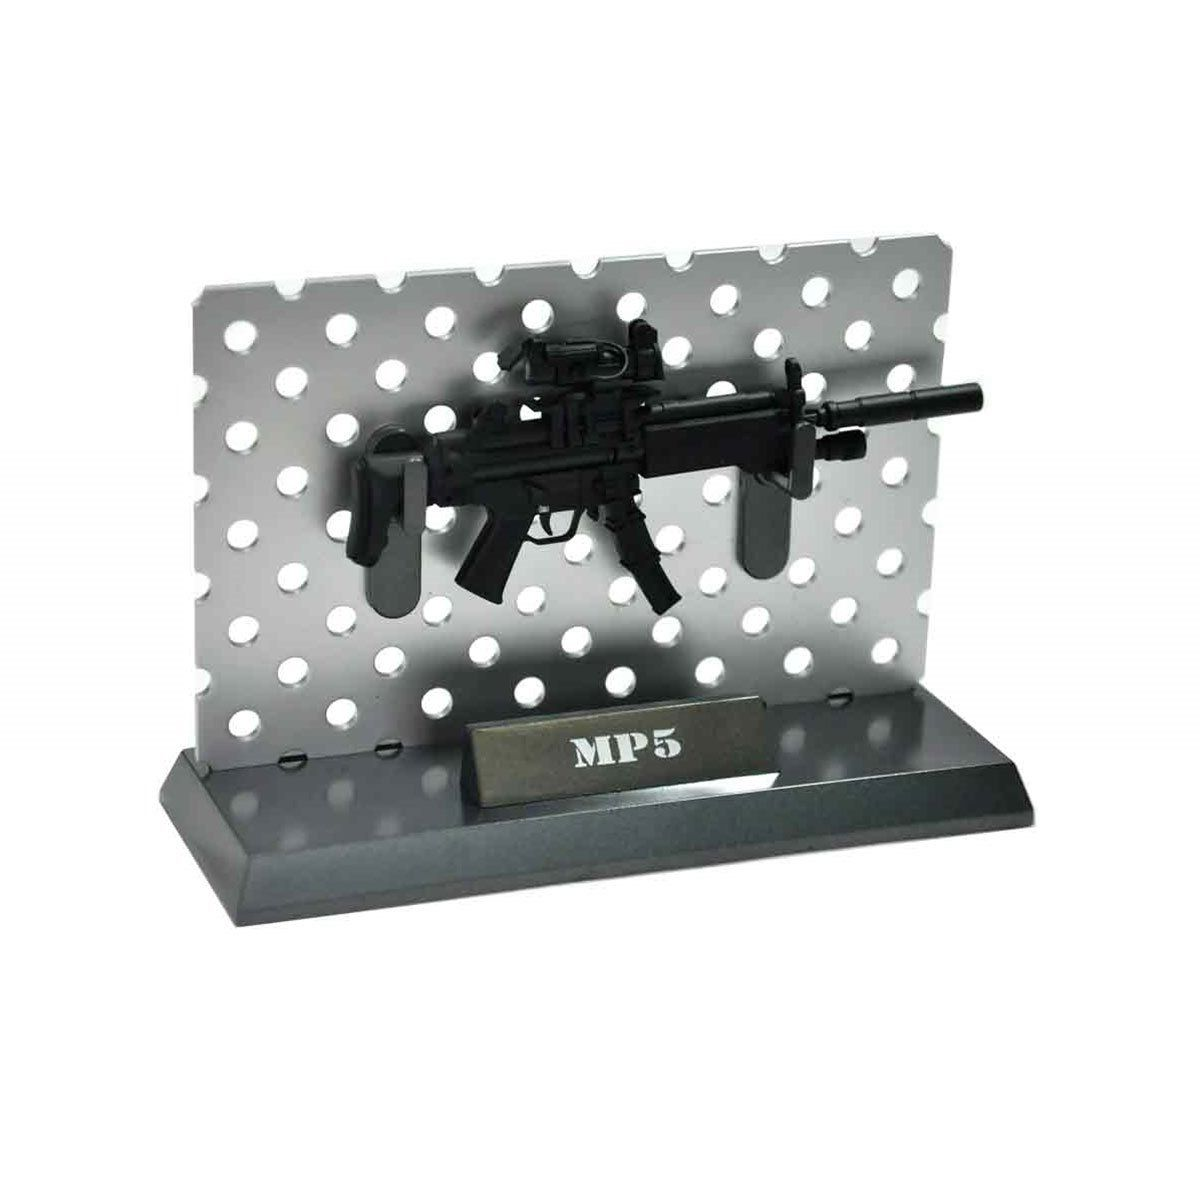 Miniatura de Arma Submetralhadora MP5 Arsenal Guns